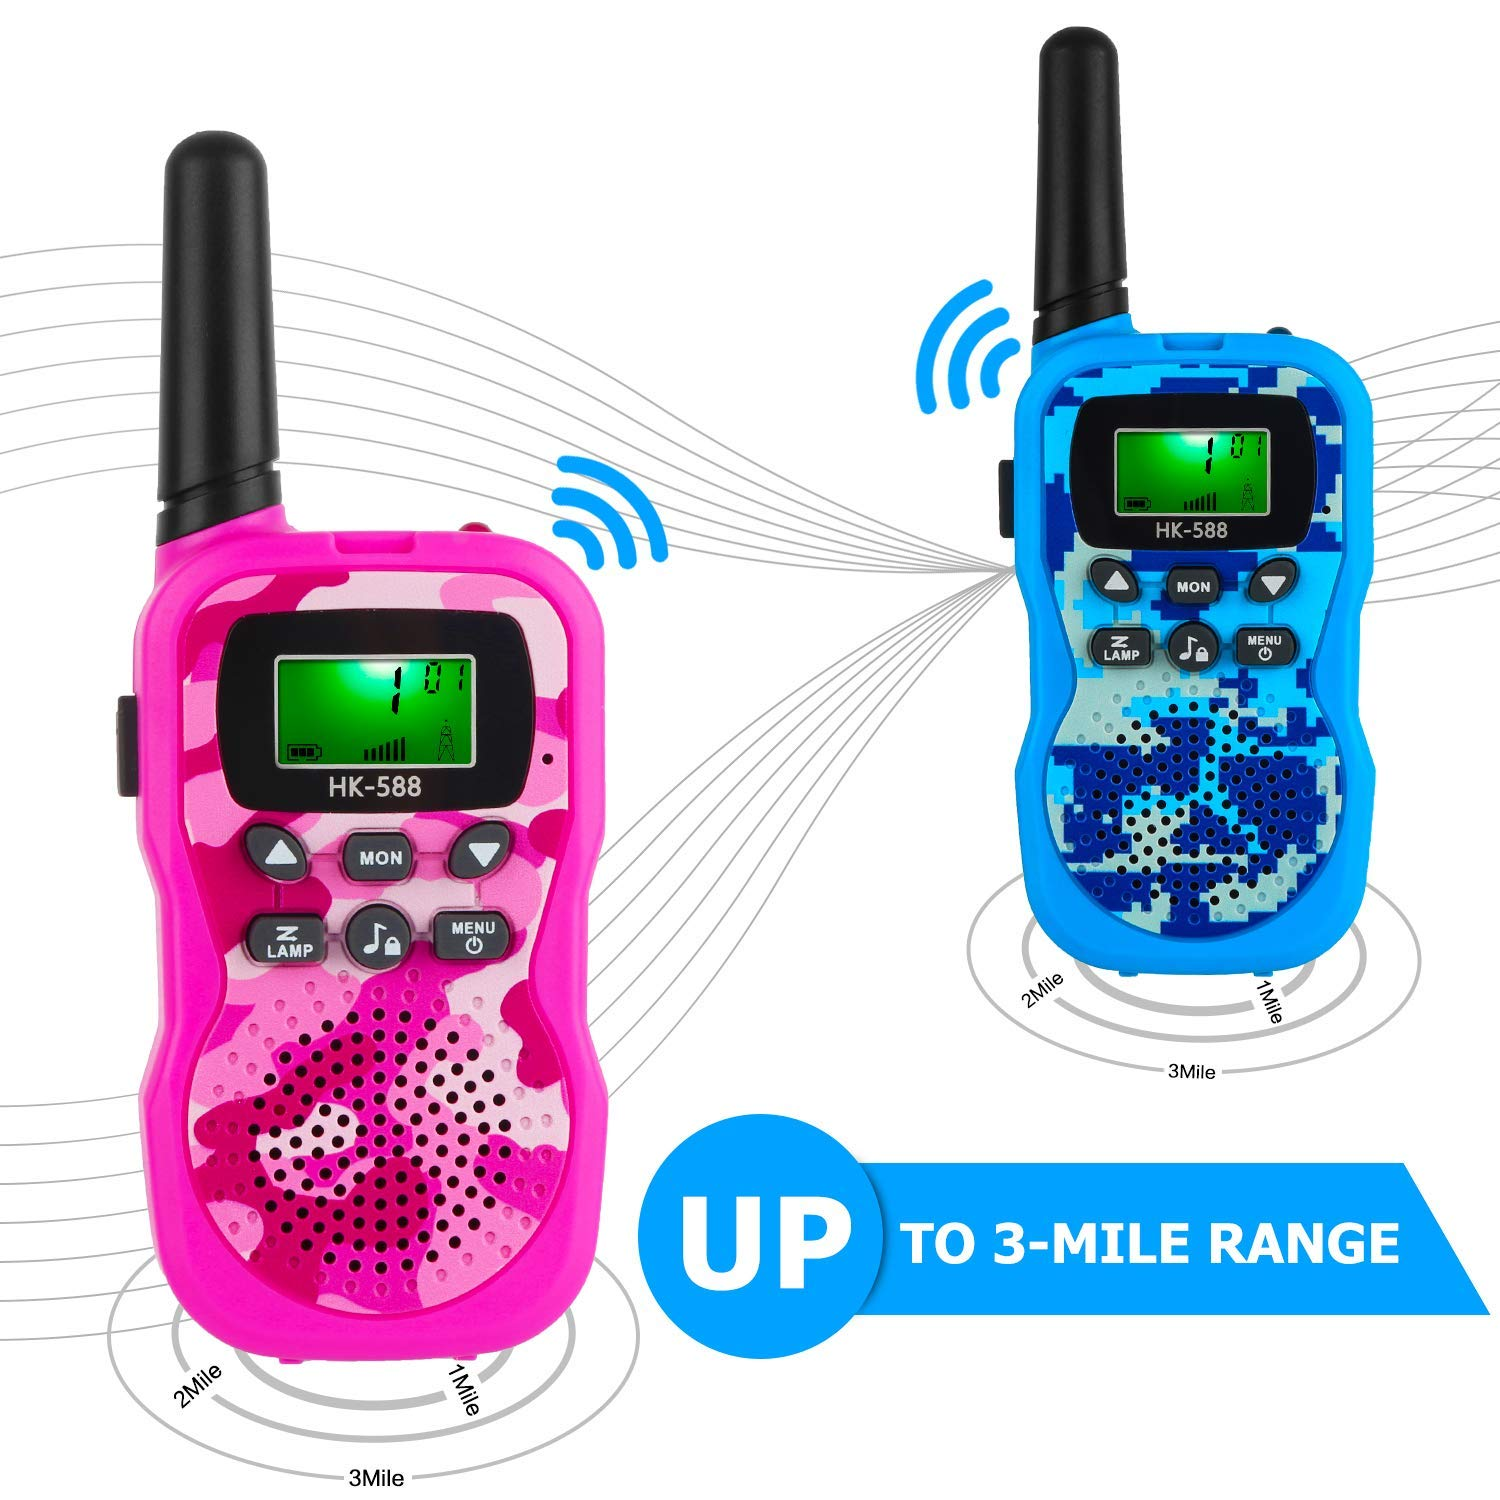 Walkie Talkies for Kids, Handheld Woki Toki Toys for Boys and Girls with Flashlight, License Free Kids Survival Gear for Hunting and Outdoor Adventure by VERDUO (Image #2)